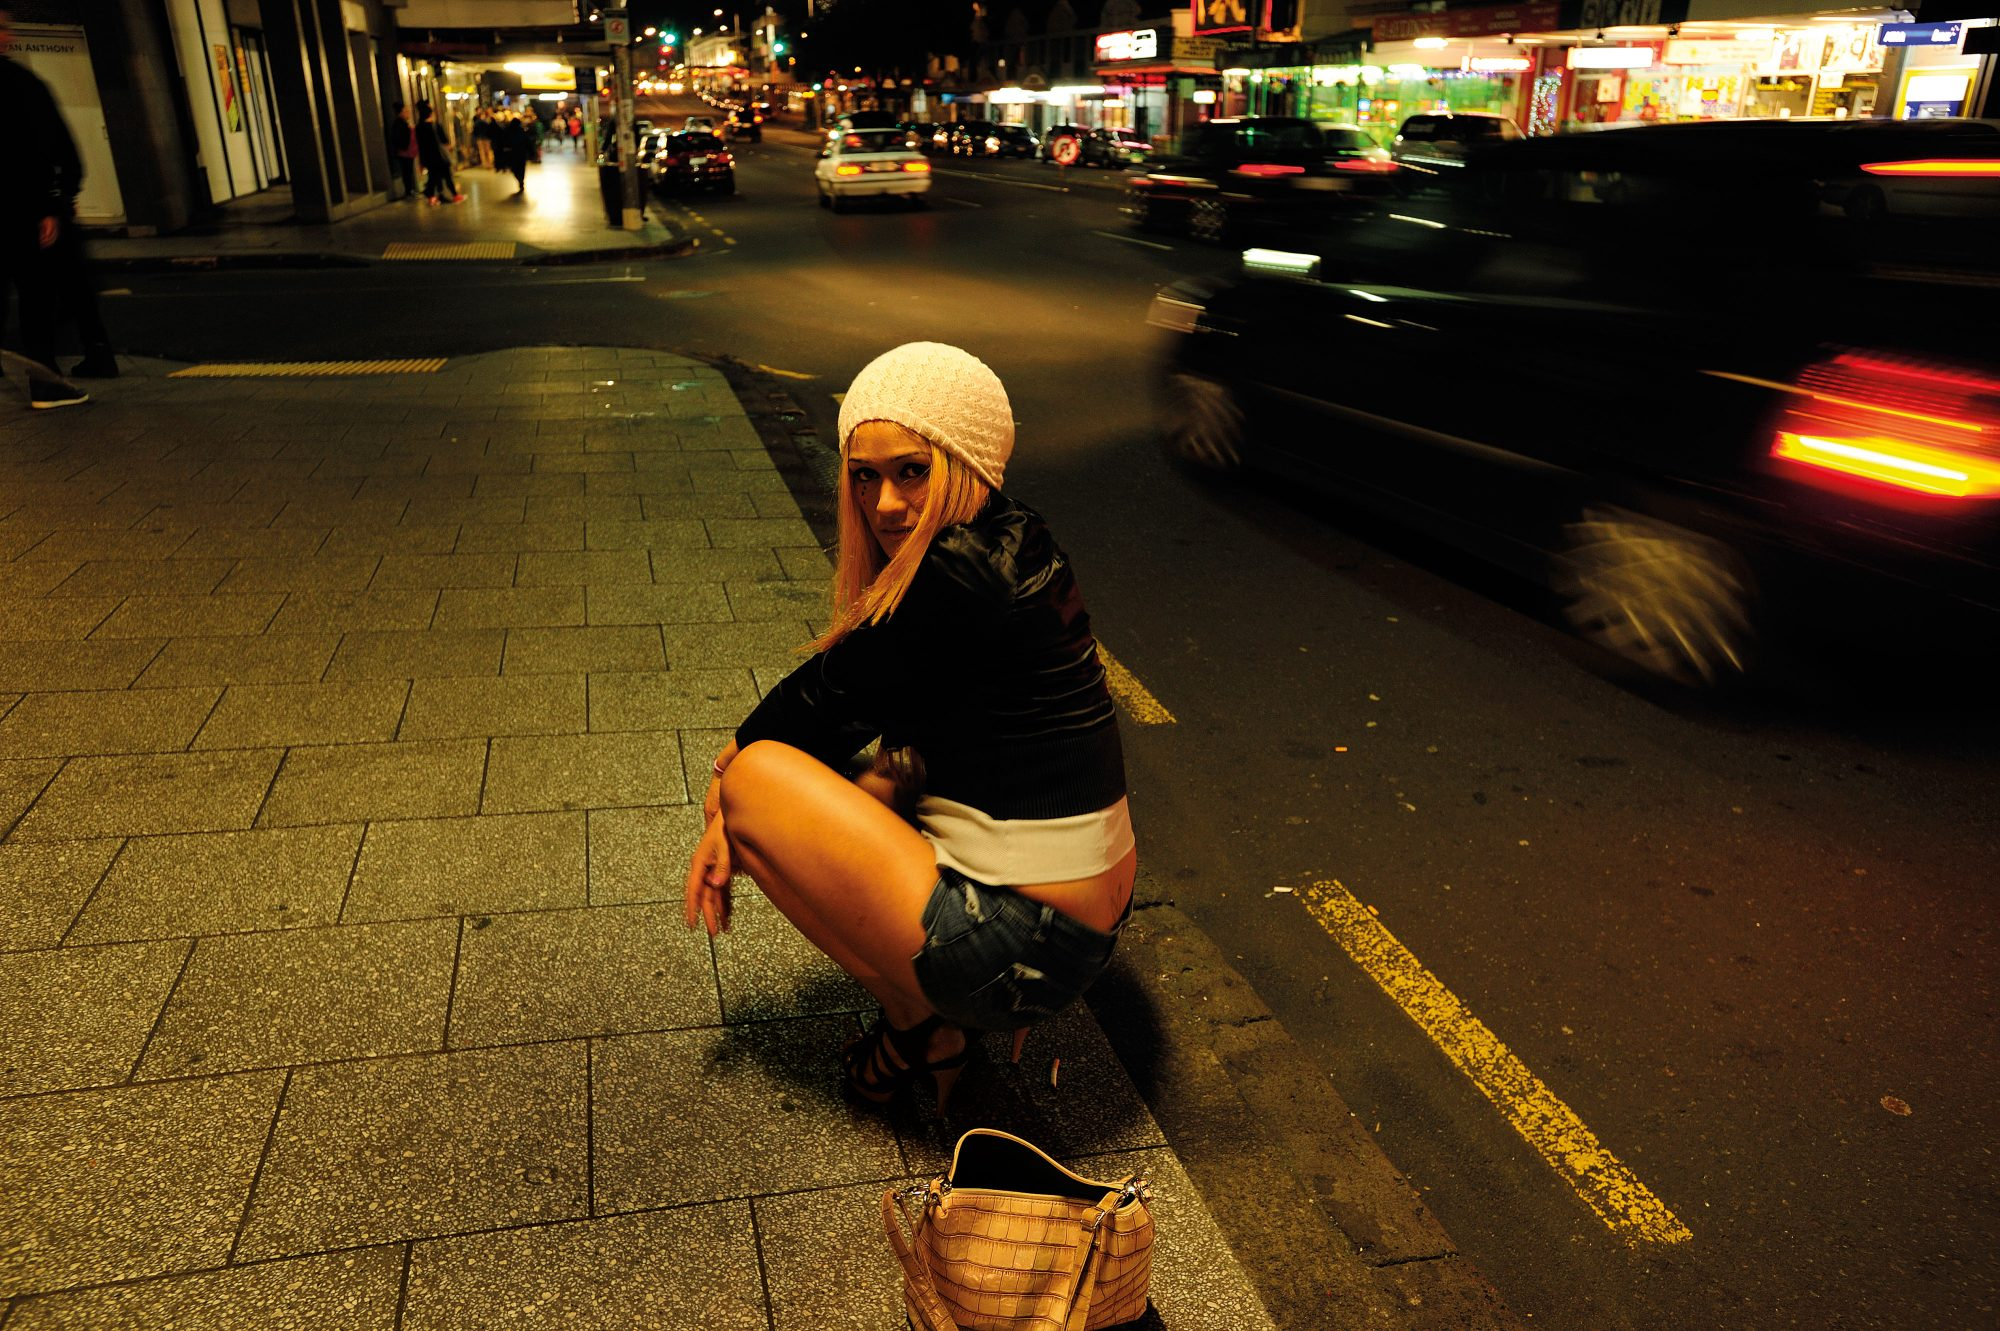 Where to find prostitutes in auckland